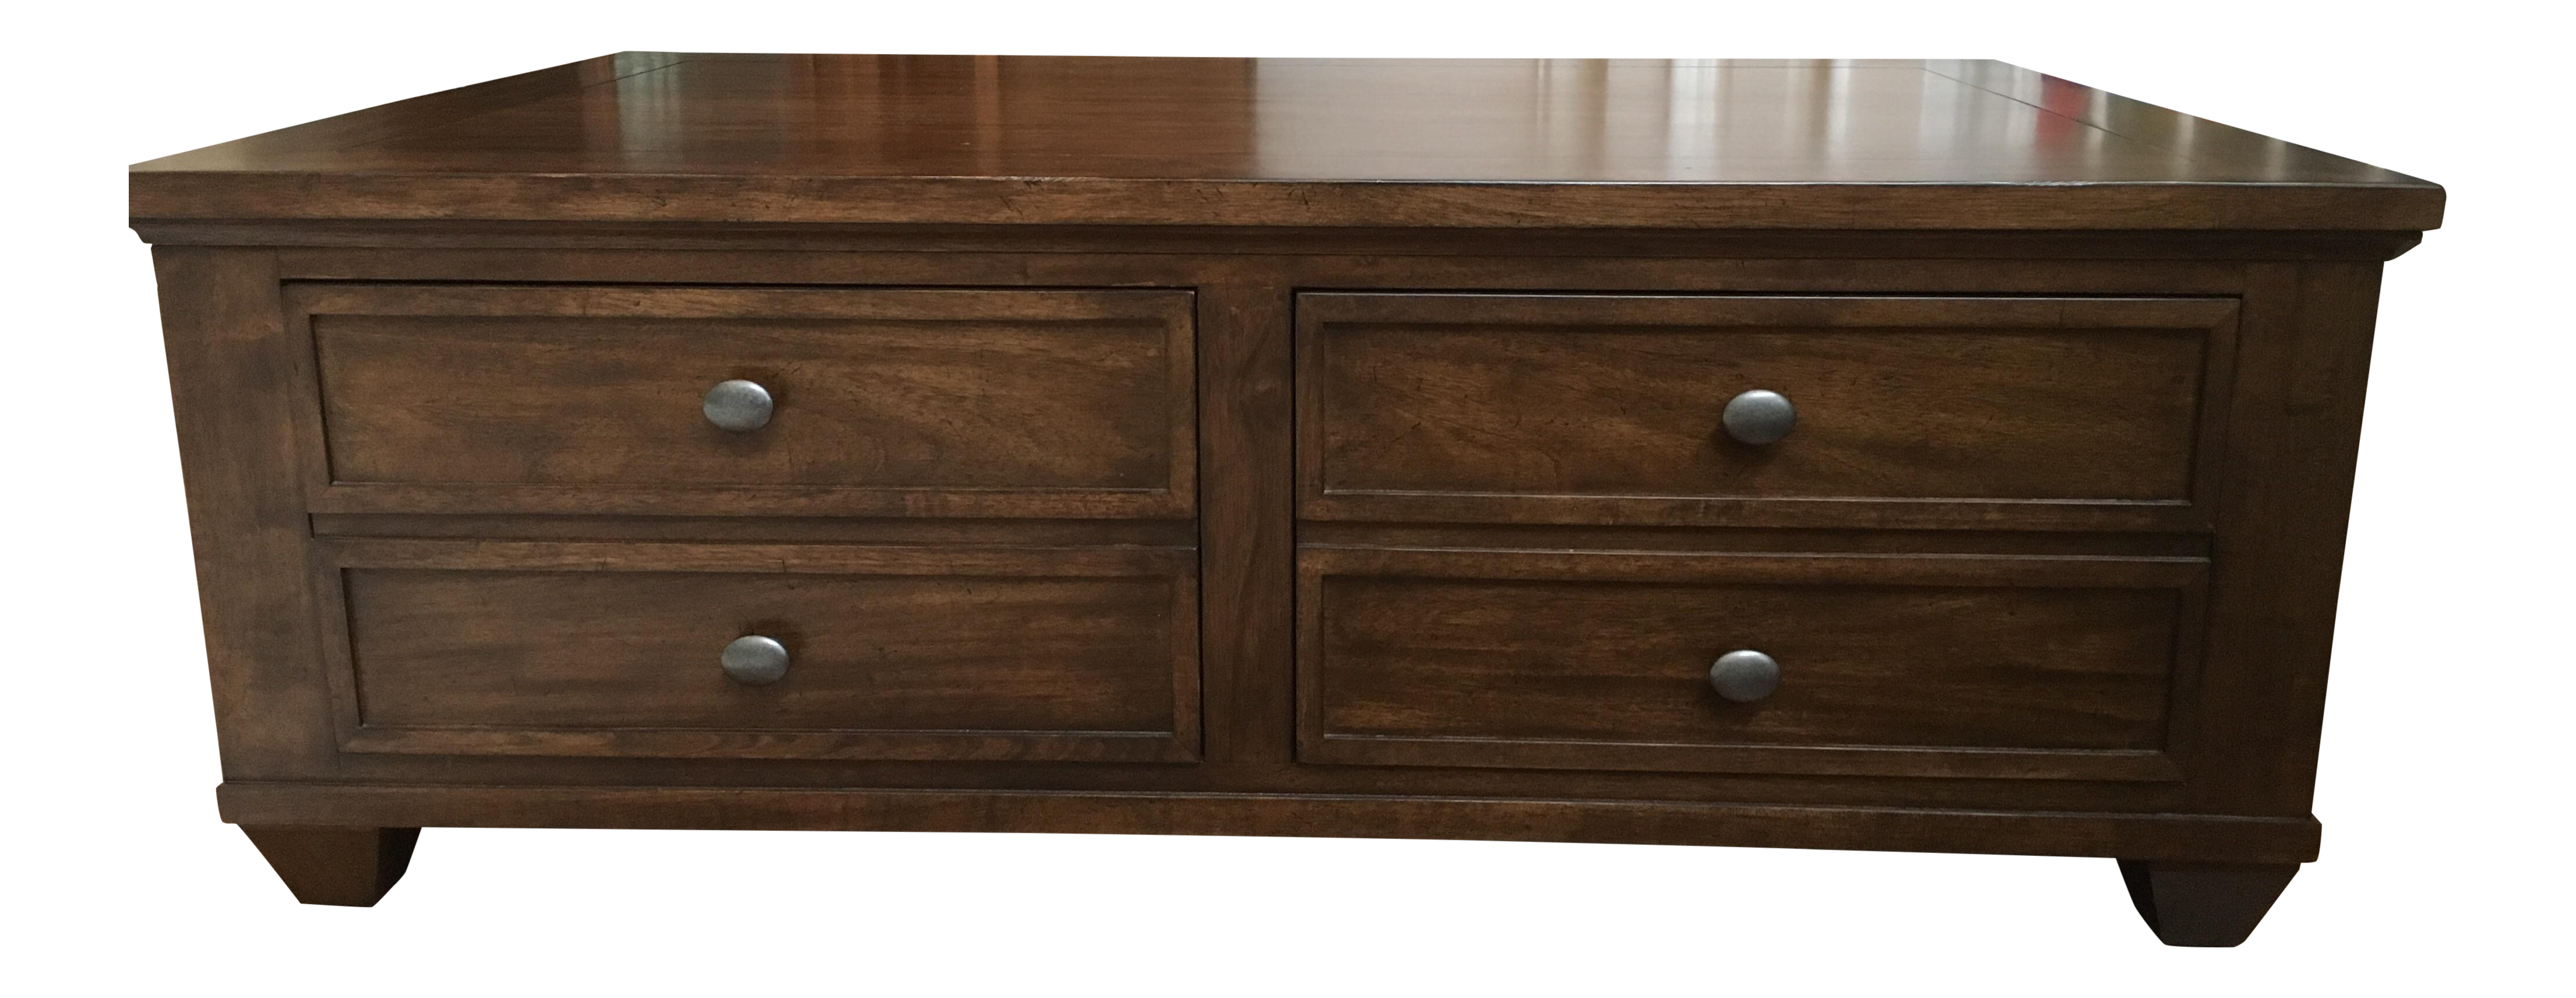 design walnut detail with elegant coffee gallery drawers ideas of simple drawer best table